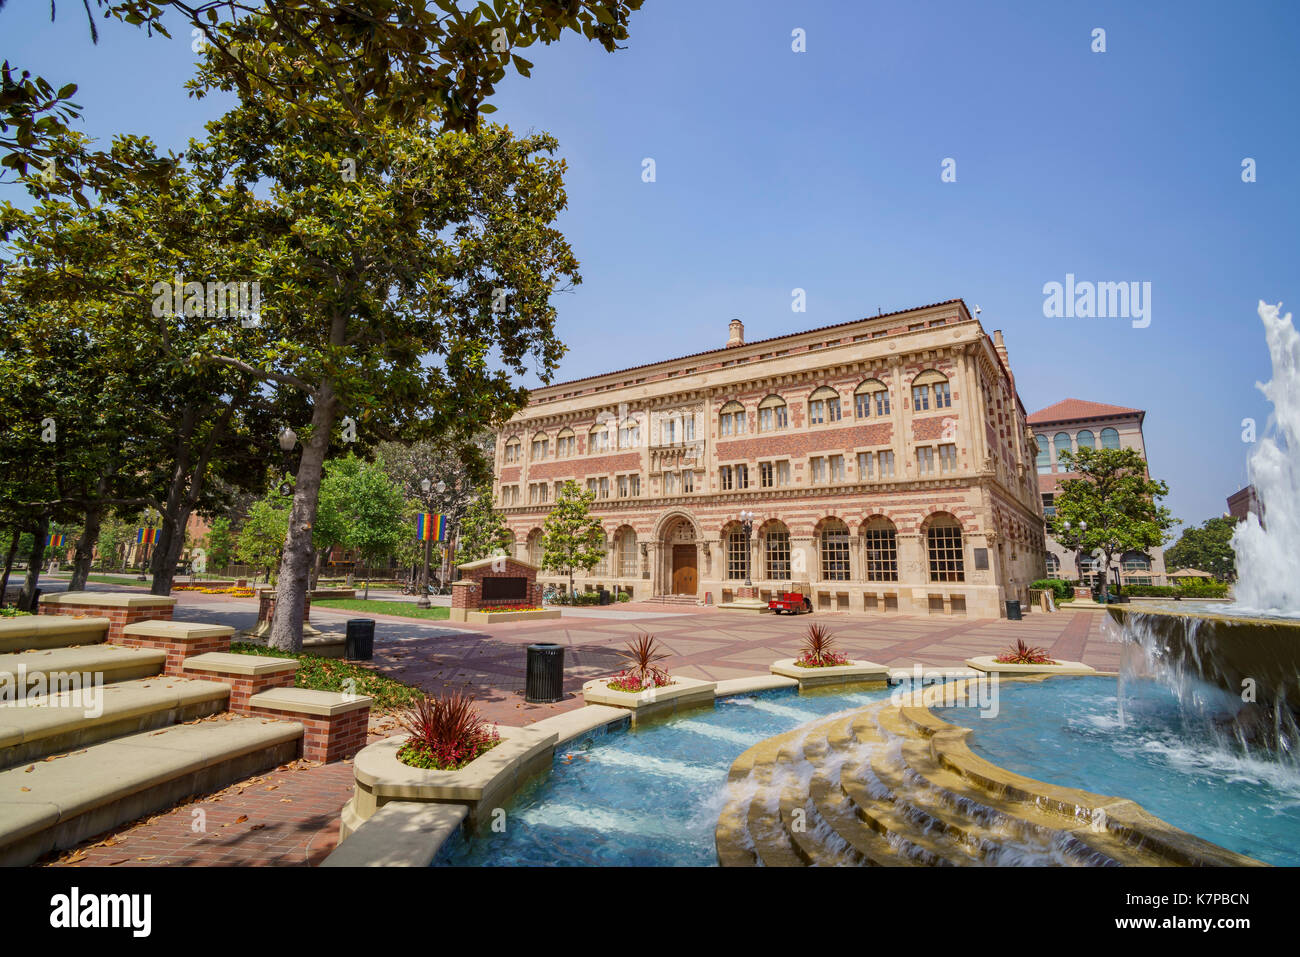 Los Angeles, JUN 4: Judicial Affairs and Community Standards of the University of Southern California on JUN 4, 2017 at Los Angeles - Stock Image